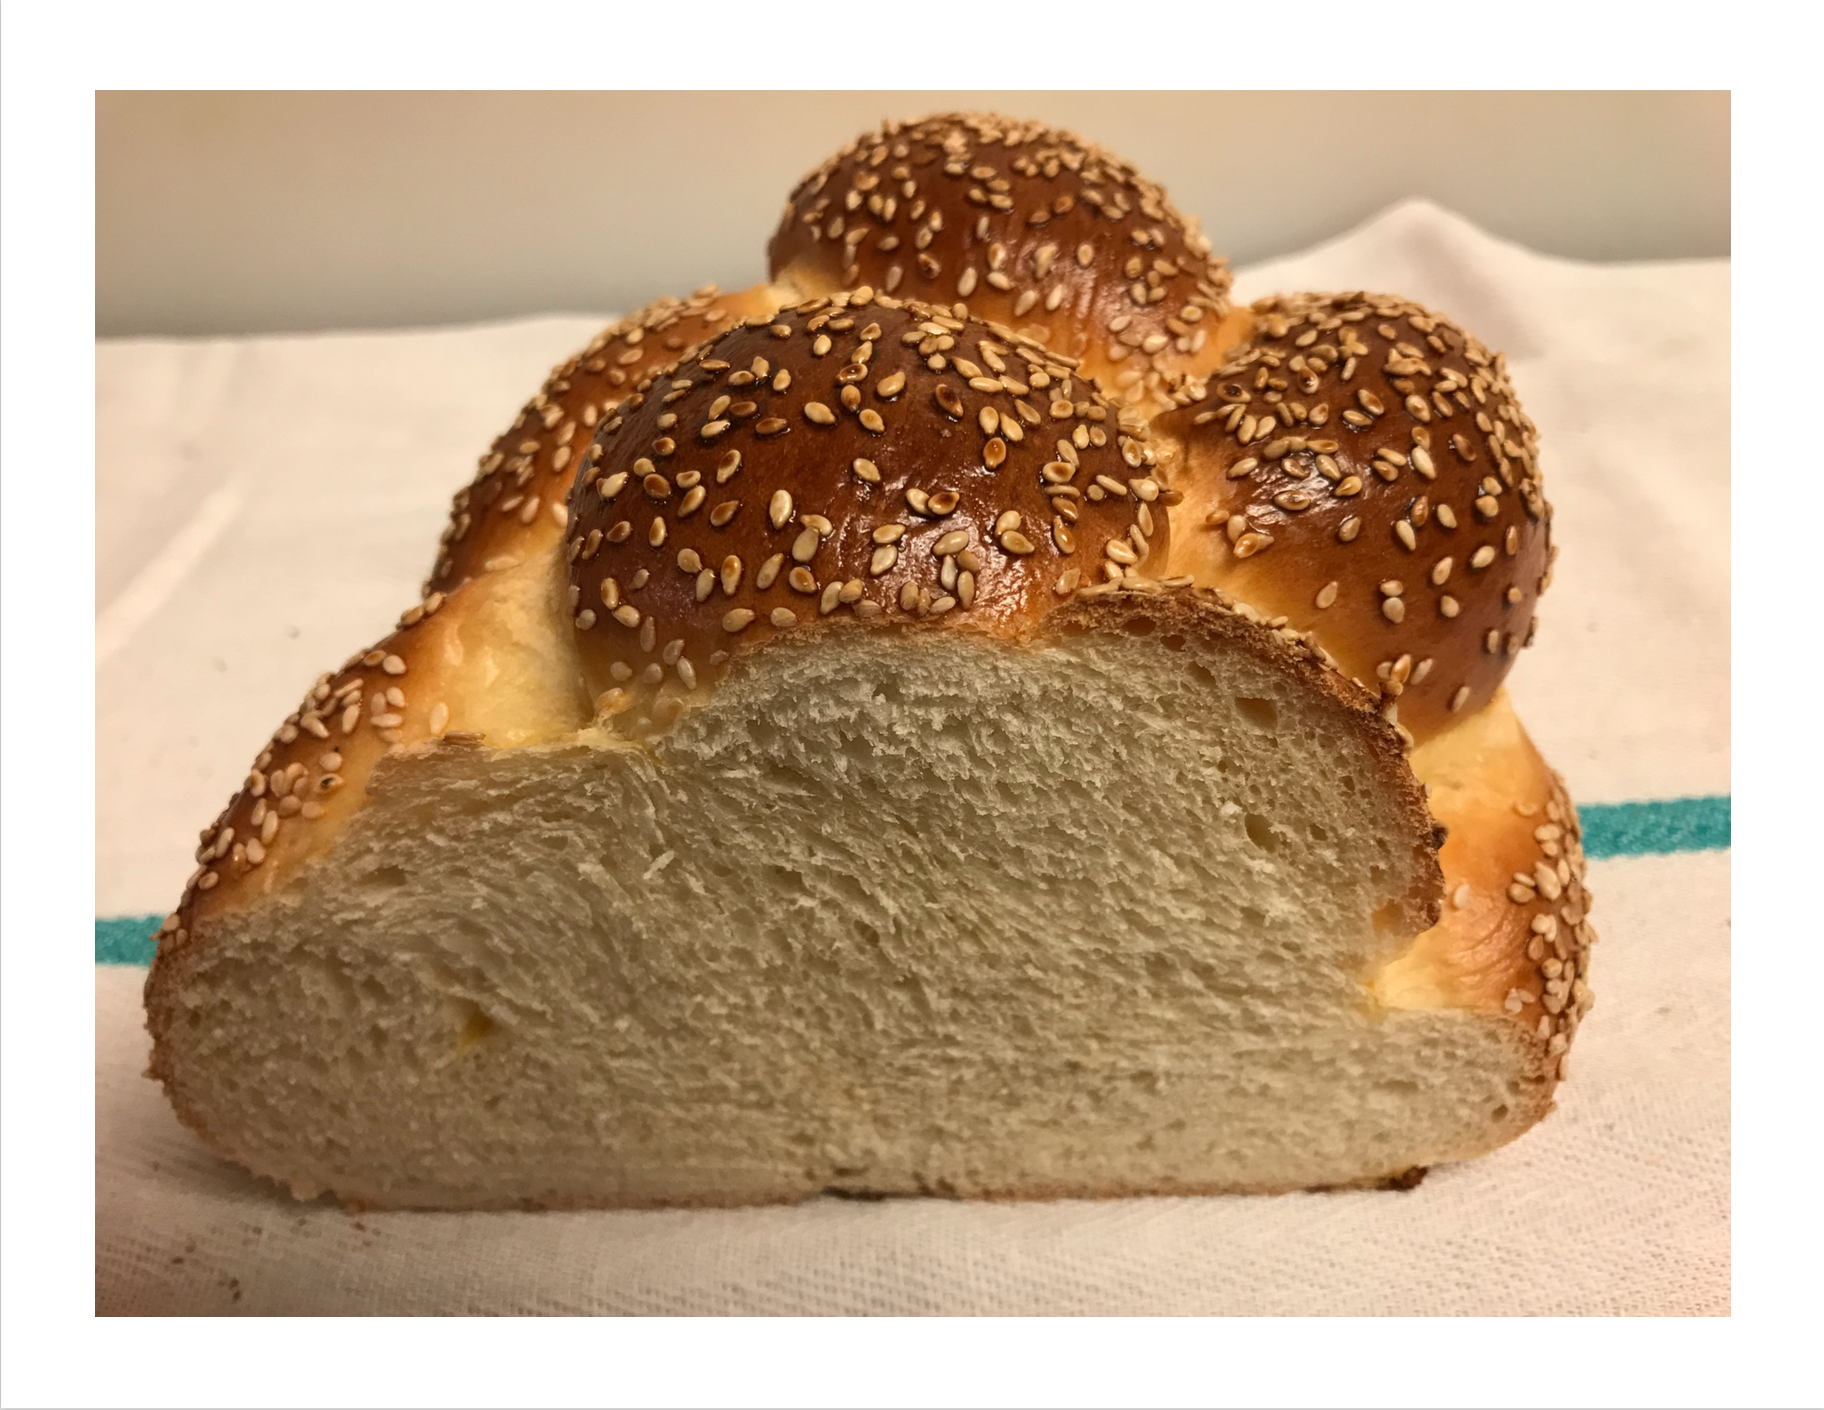 Best of Show, Breads. Robert Brower, Celebration Challah 2